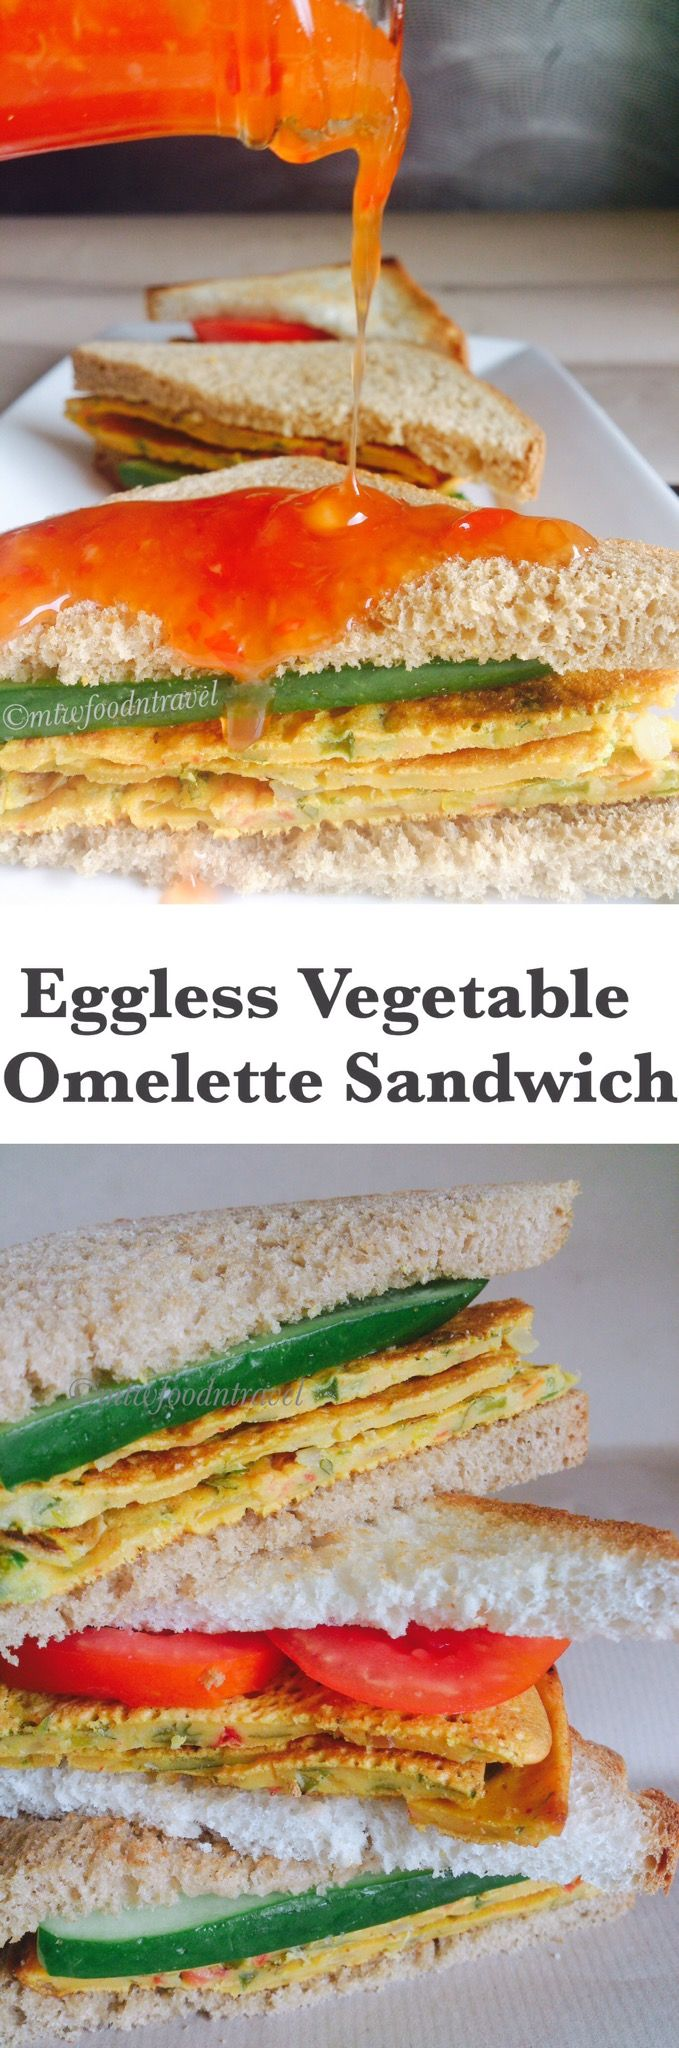 My Tryst With Food And Travel: EGGLESS VEGETABLE OMELETTE SANDWICH - HEALTHY KICK...